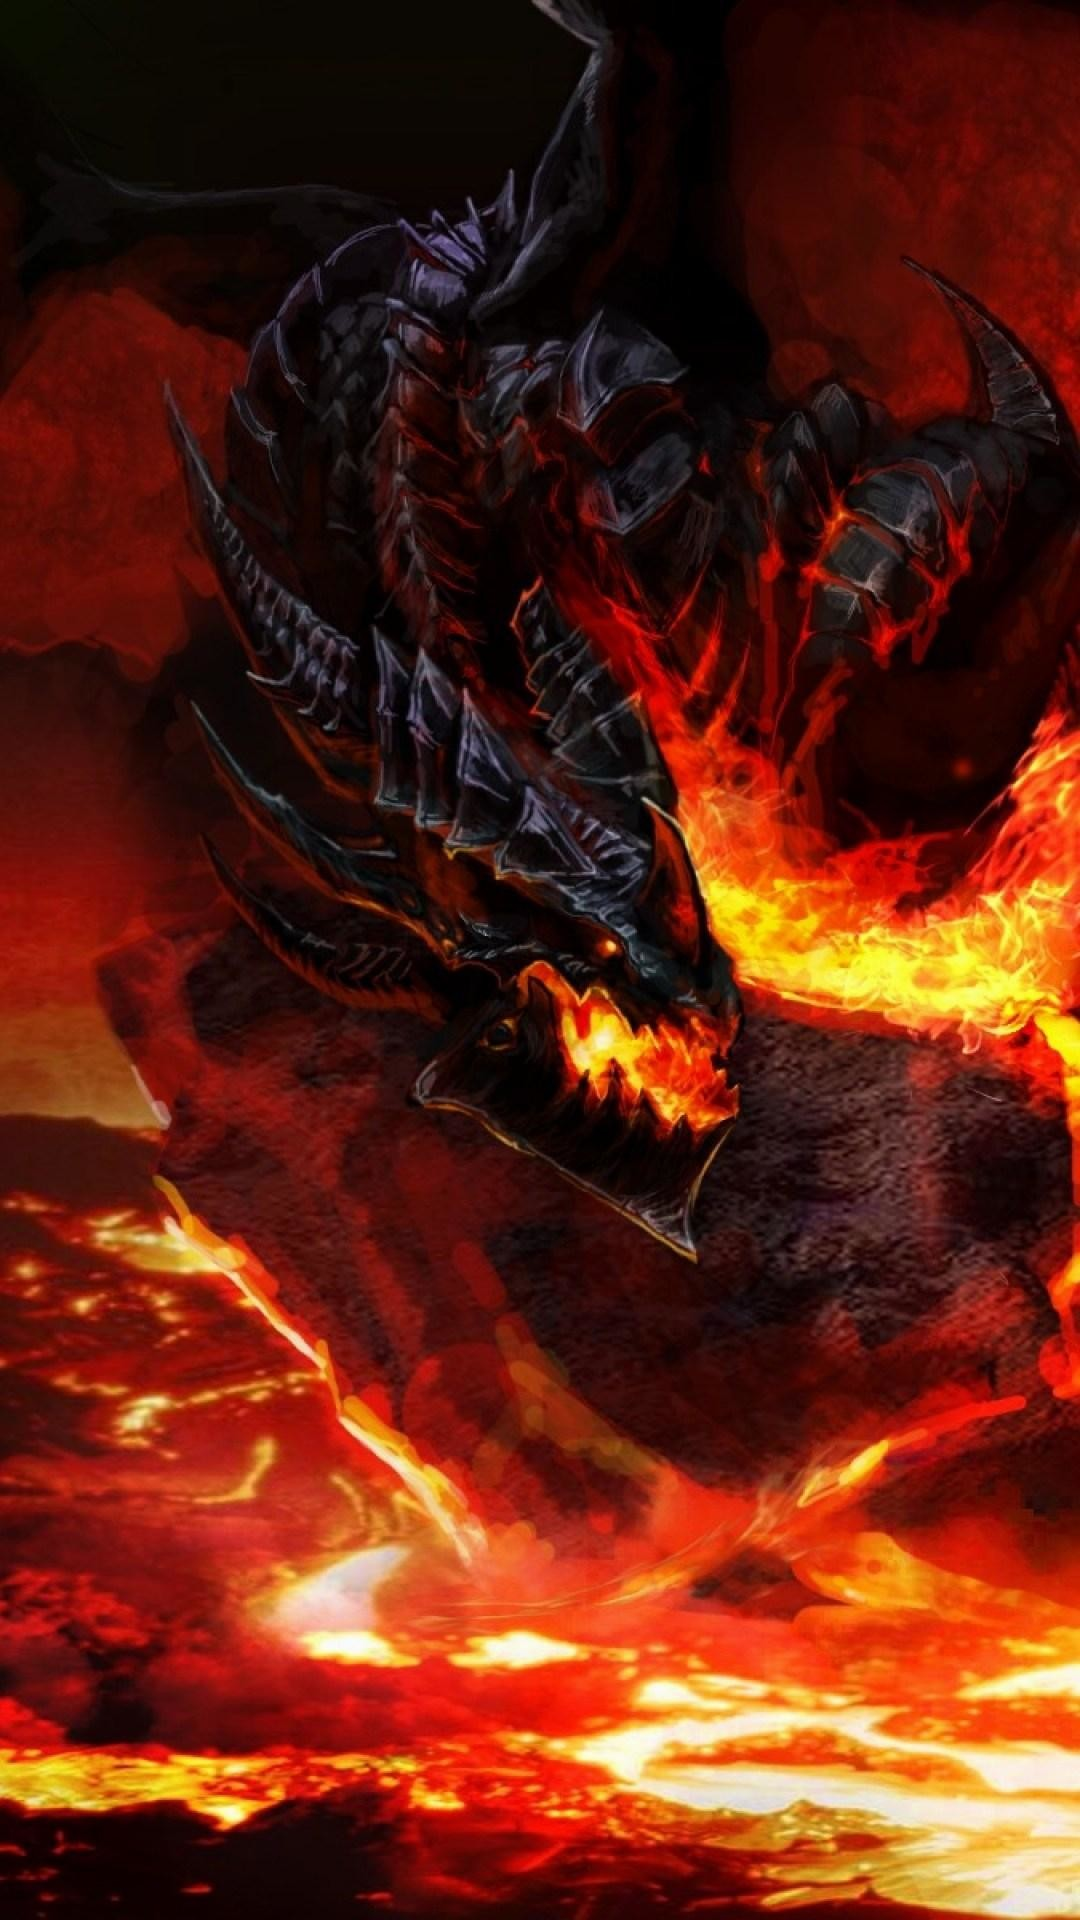 Dragon wallpapers for iphone 63 images - Dragon wallpaper hd for pc ...